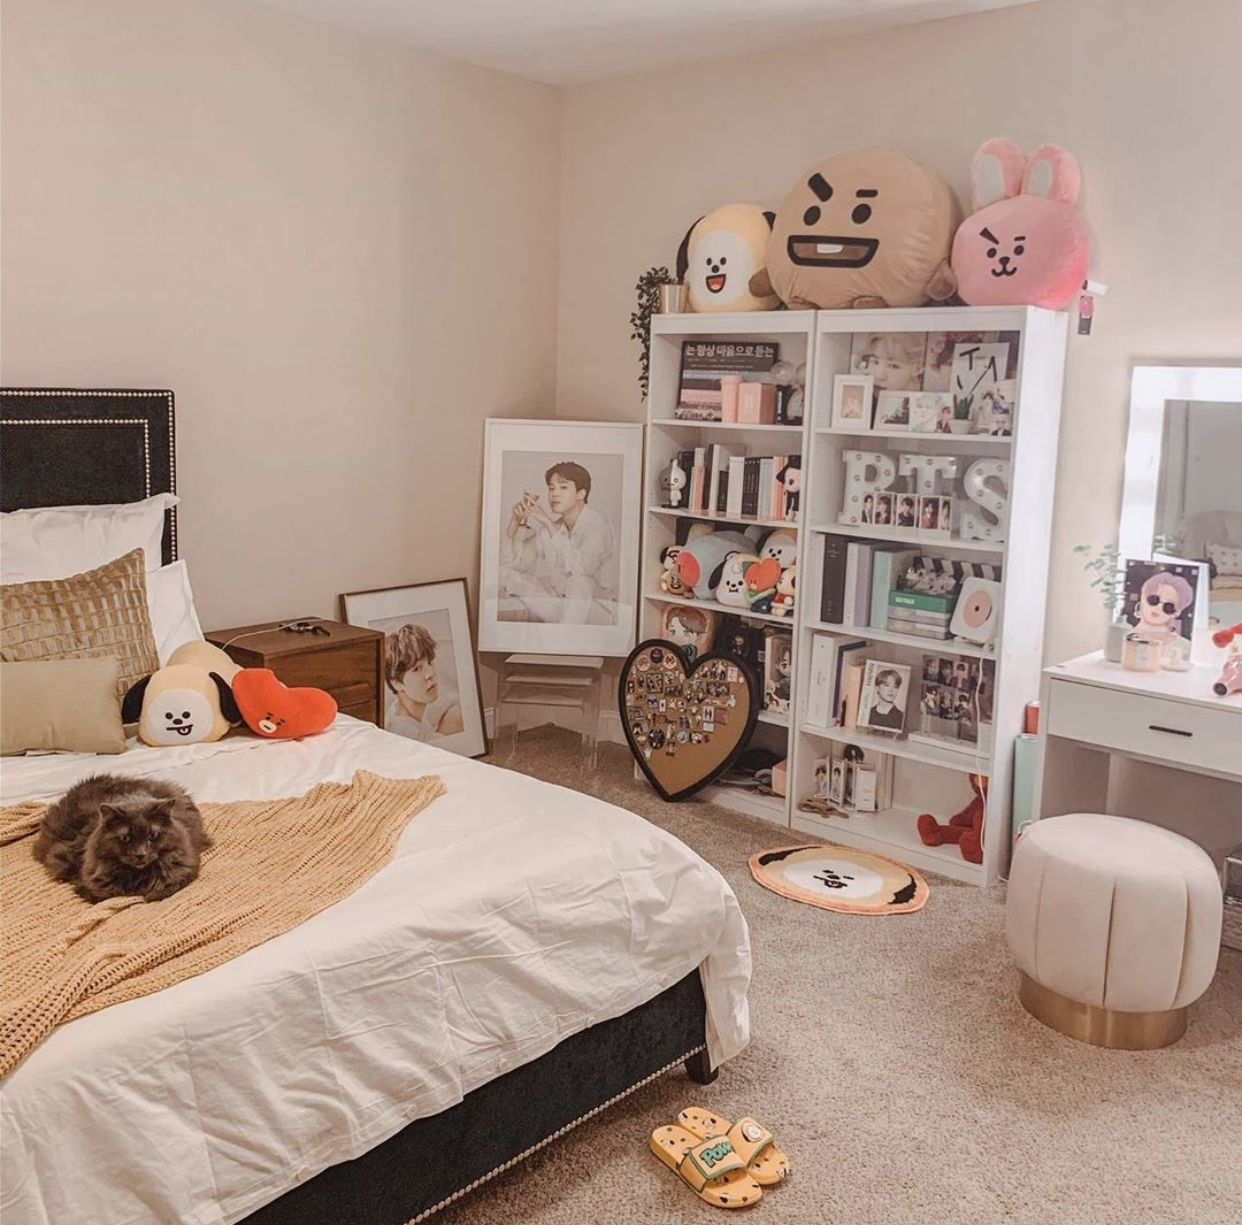 Bts Room Decor In 2020 Army Room Decor Aesthetic Rooms Dream Rooms